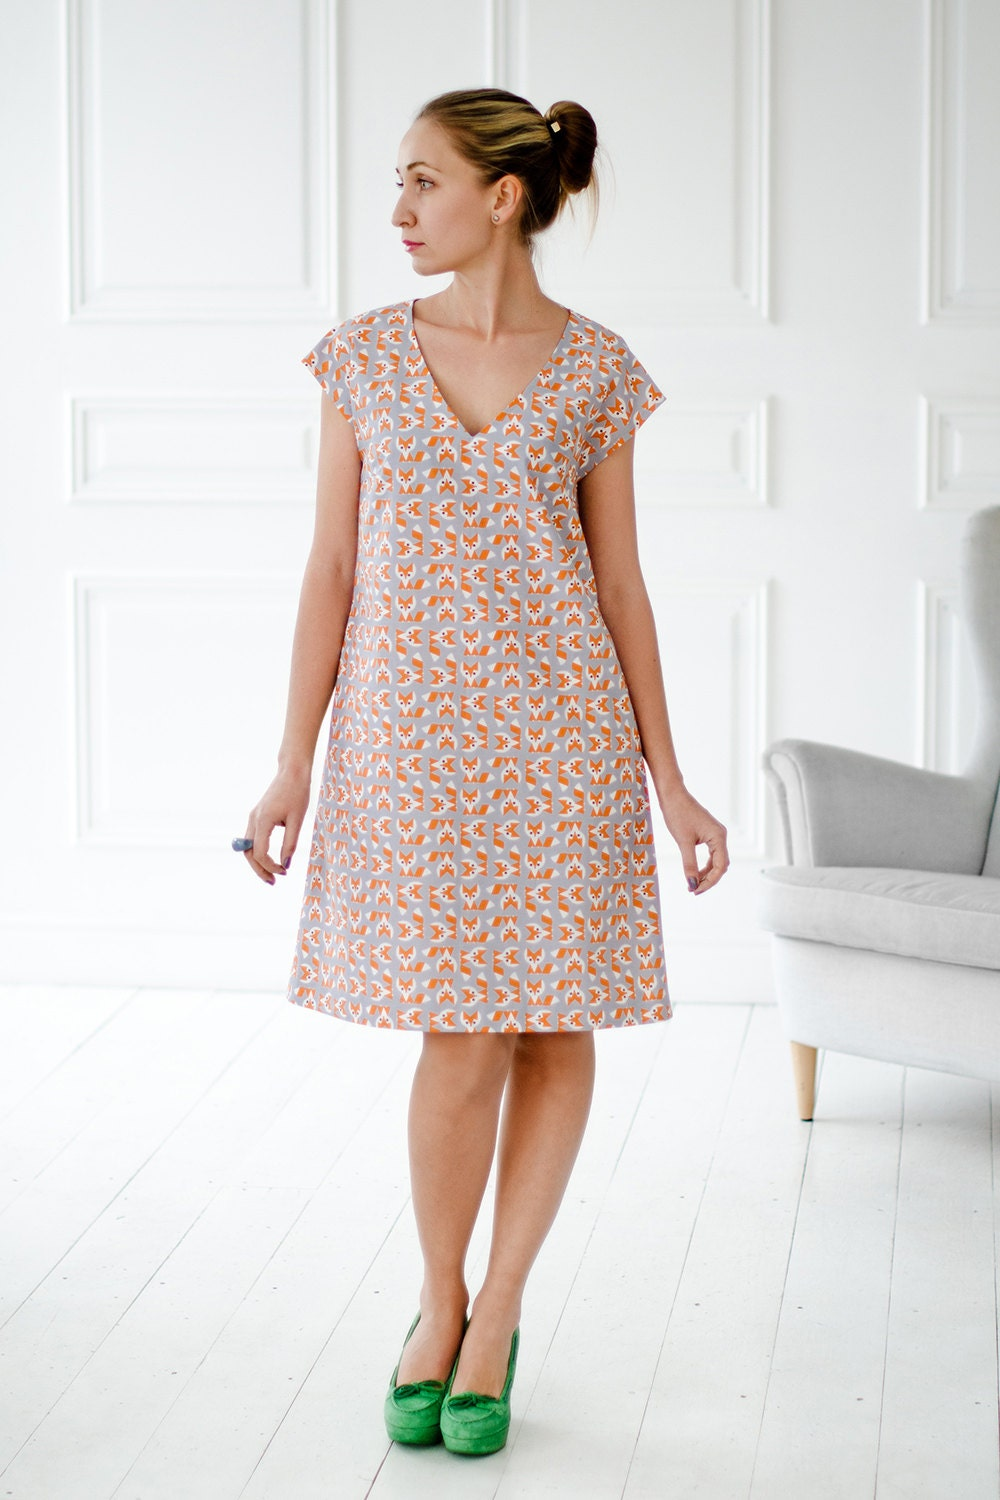 Buy cotton dresses women at Garnet Hill. Enjoy the comfort of cotton dresses women in delightful colors in the softest cotton blends. Effortless in lightweight organic cotton, this anyday dress has a straight shape, open neckline, and flattering sleeves. The ladylike way to float through a summer's worth of soirées, our lovely dress is.